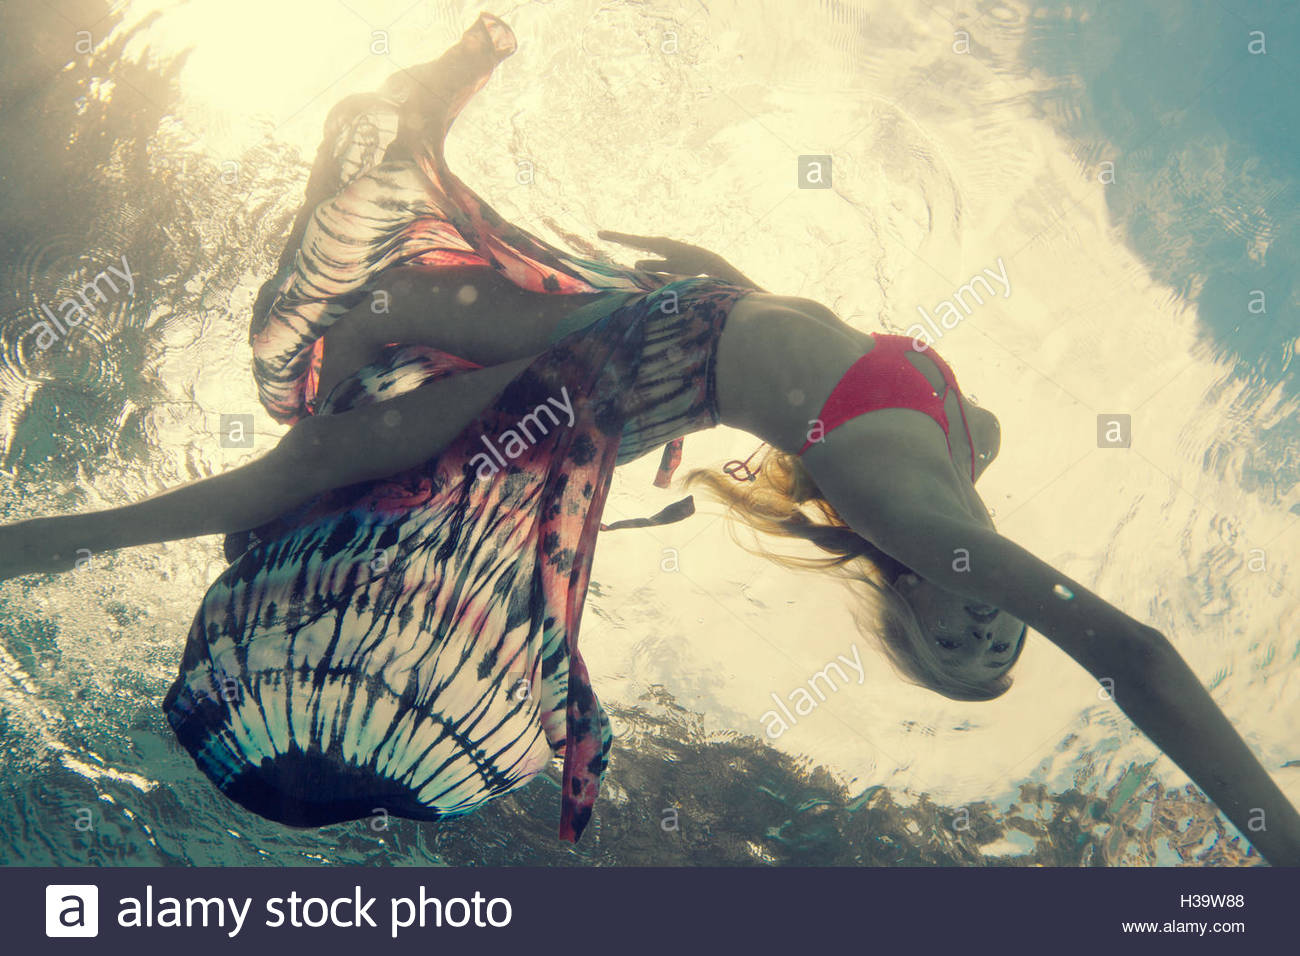 underwater shot of a young woman swimming in a pool - Stock Image